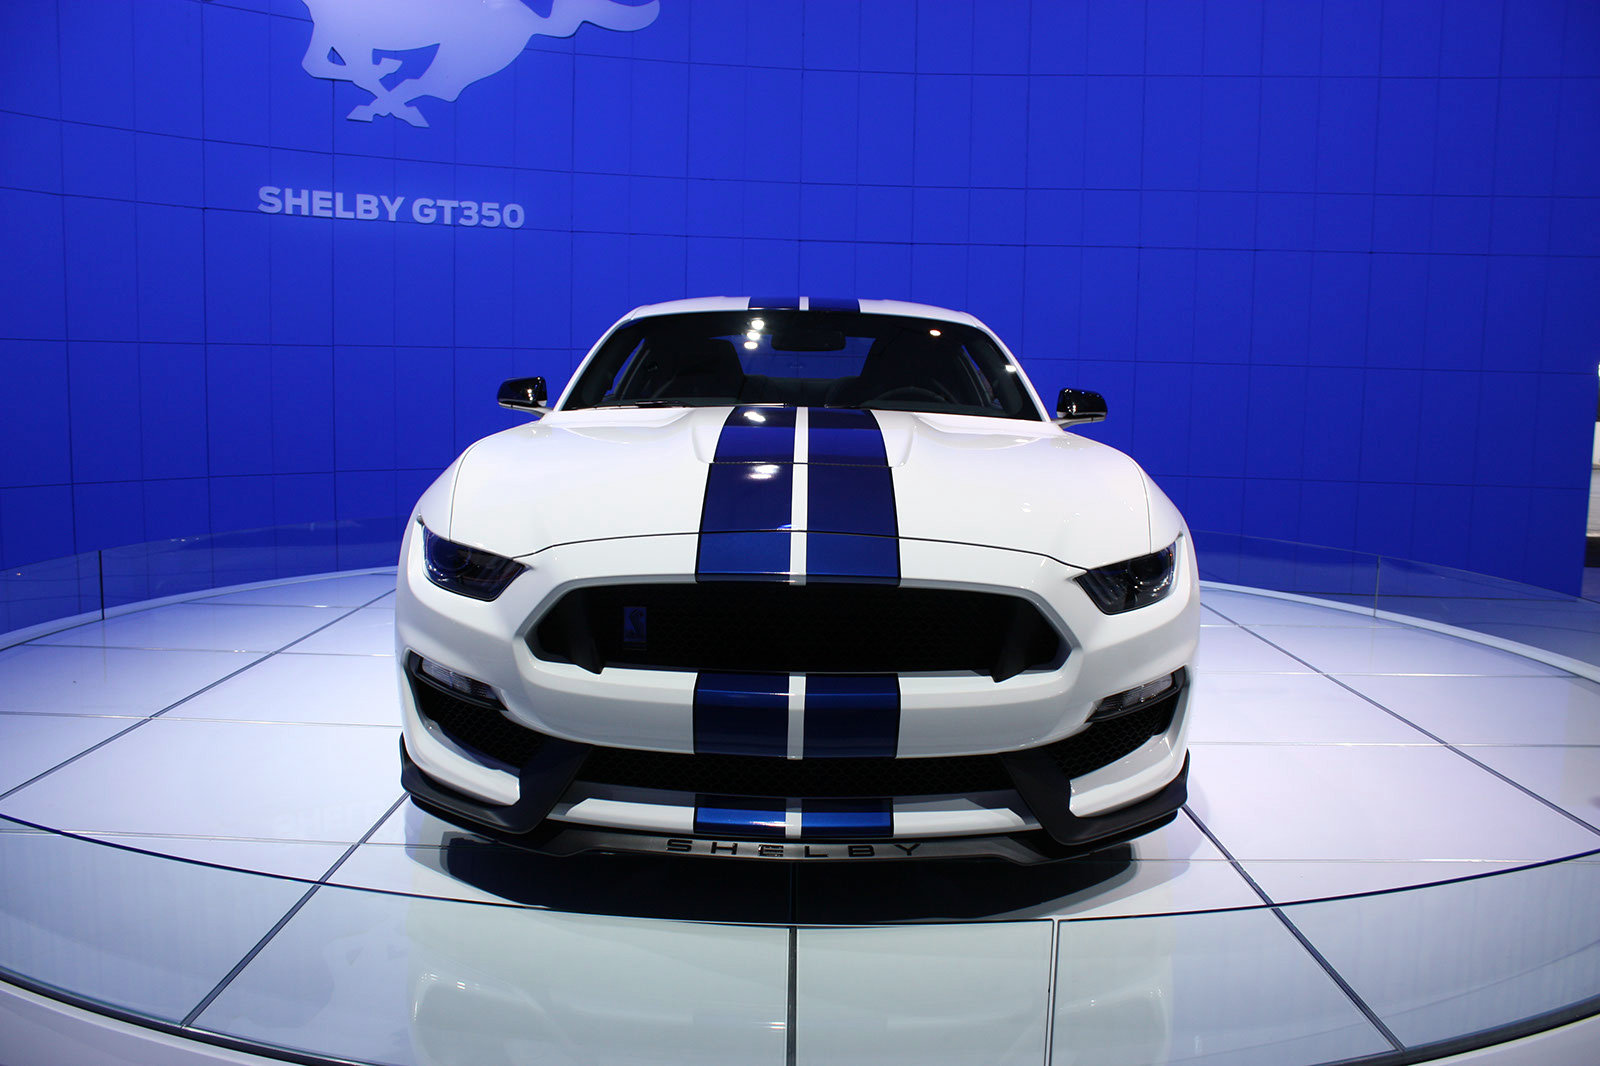 2016 2017 ford shelby gt350 mustang picture 579131 car review top speed. Black Bedroom Furniture Sets. Home Design Ideas